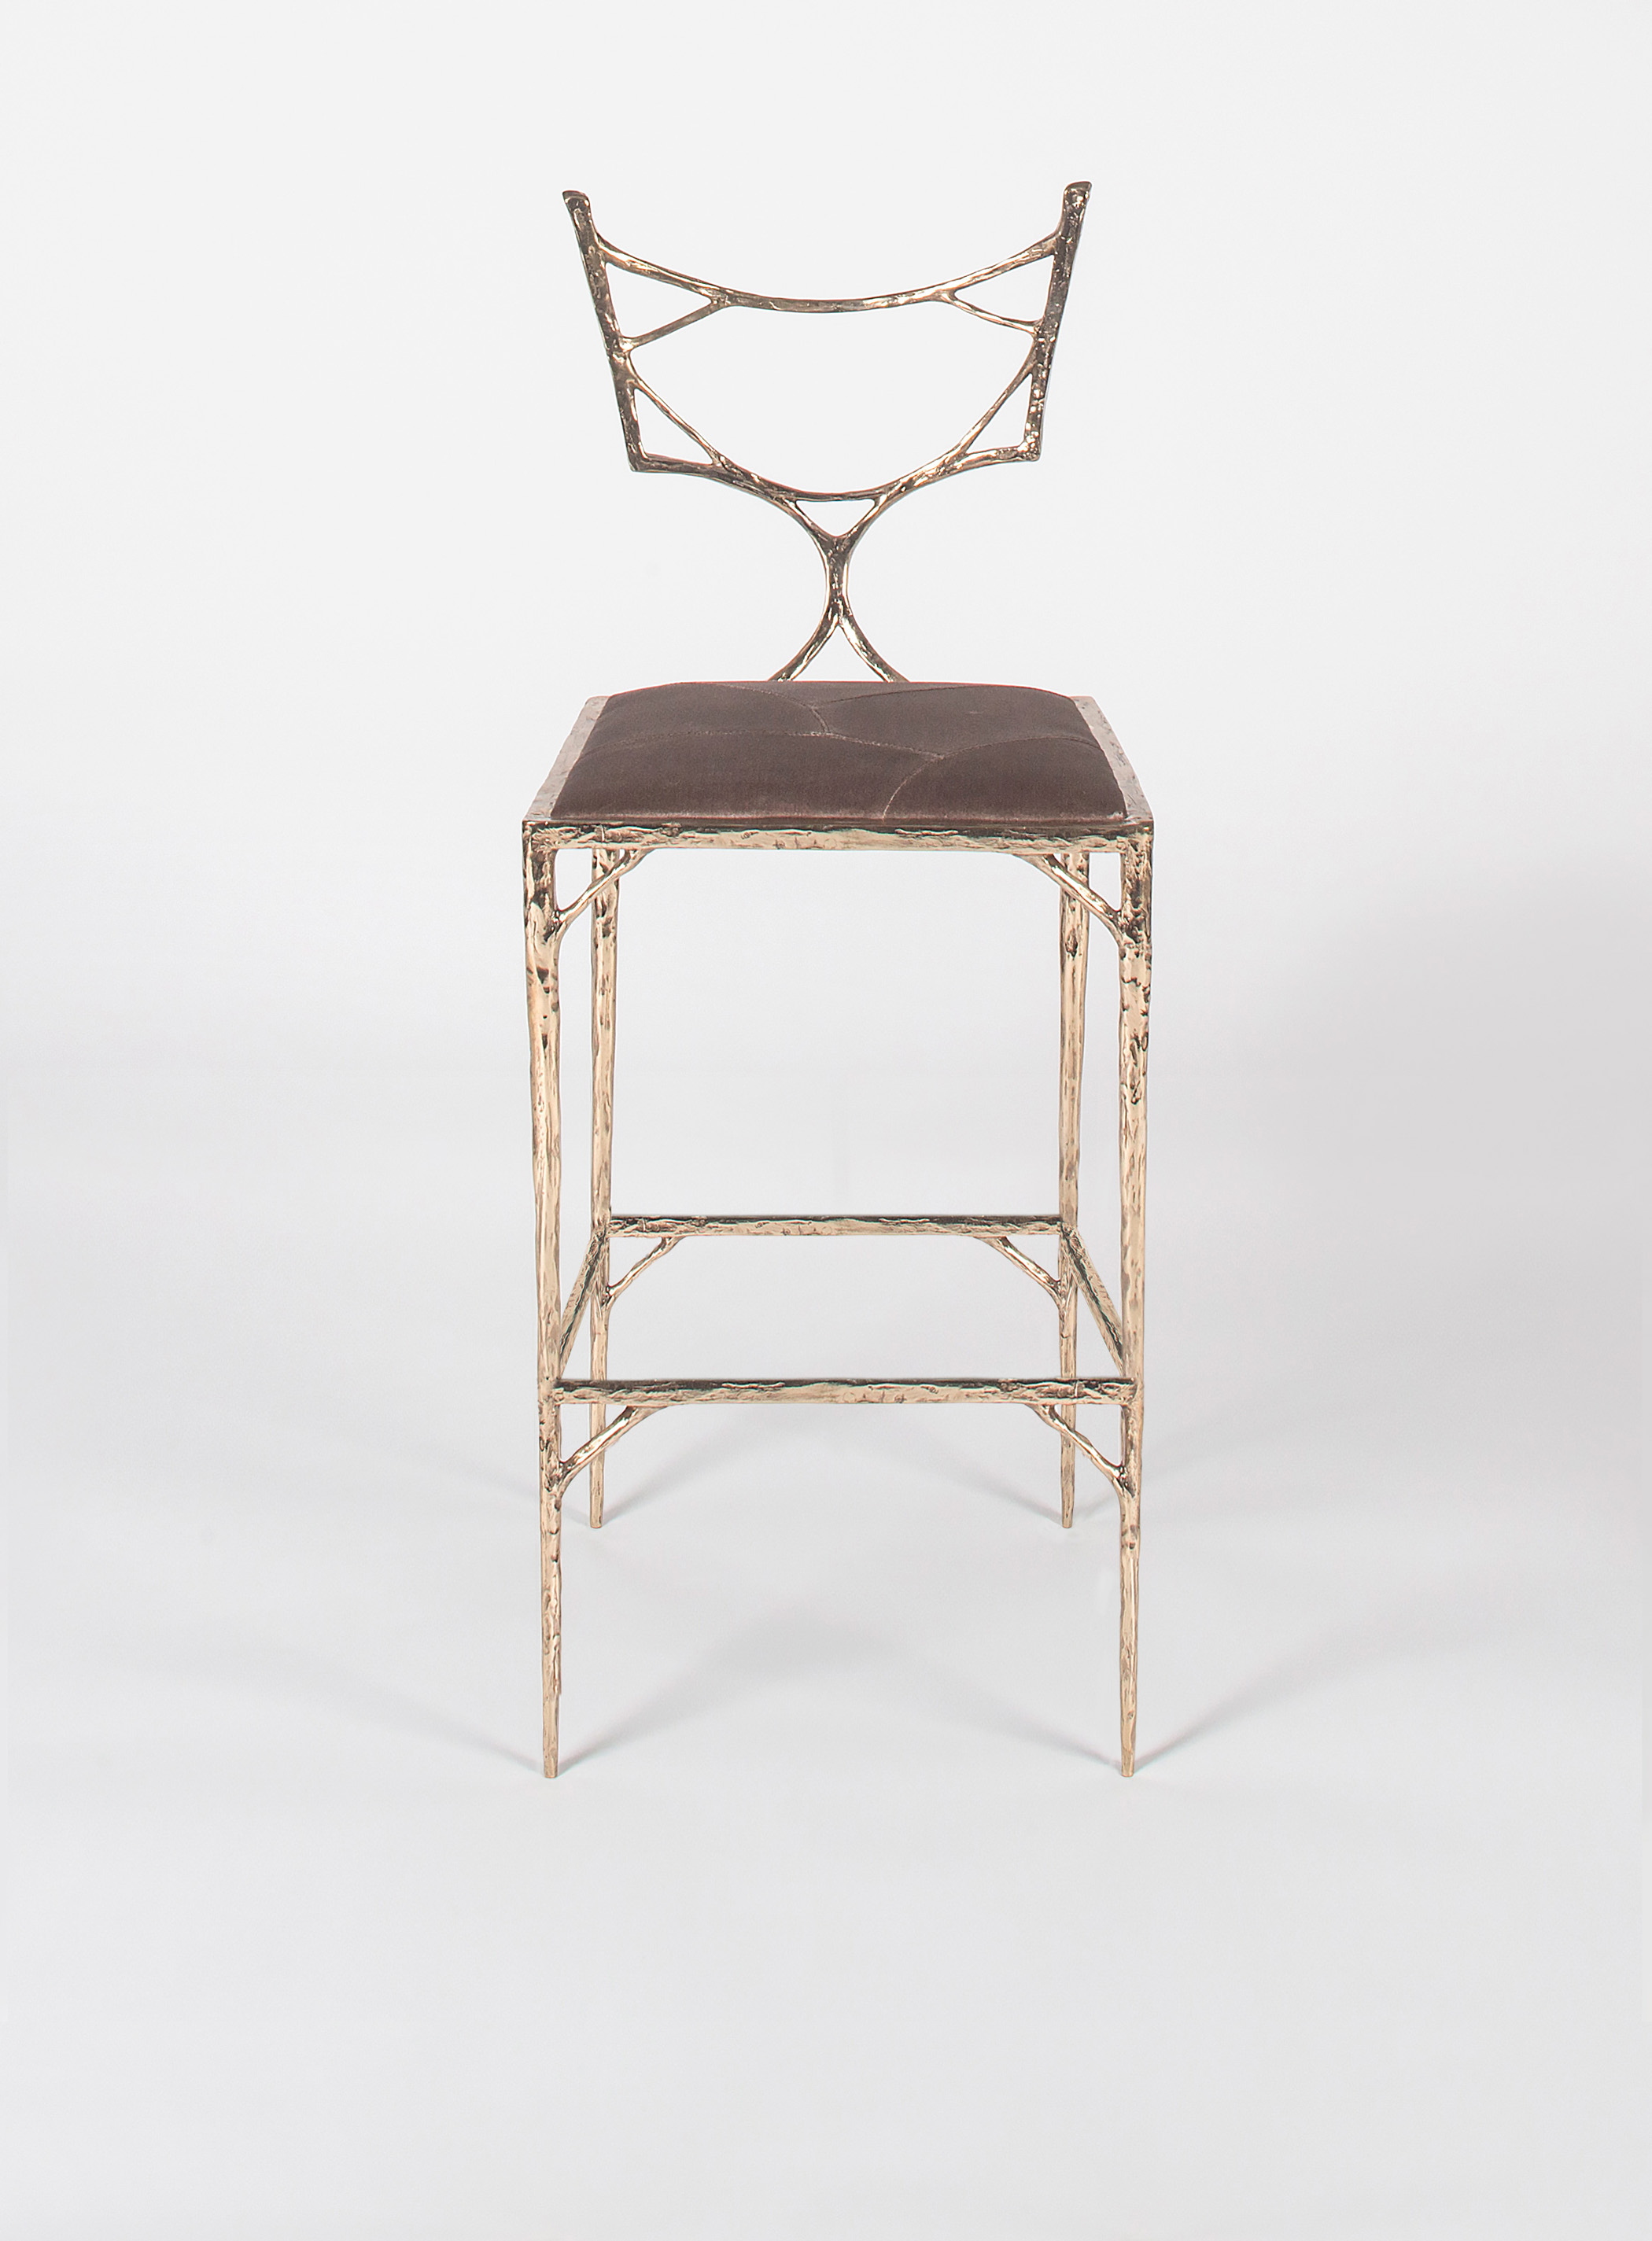 Wondrous Magni Home Collection Chairs And Barstools Gamerscity Chair Design For Home Gamerscityorg